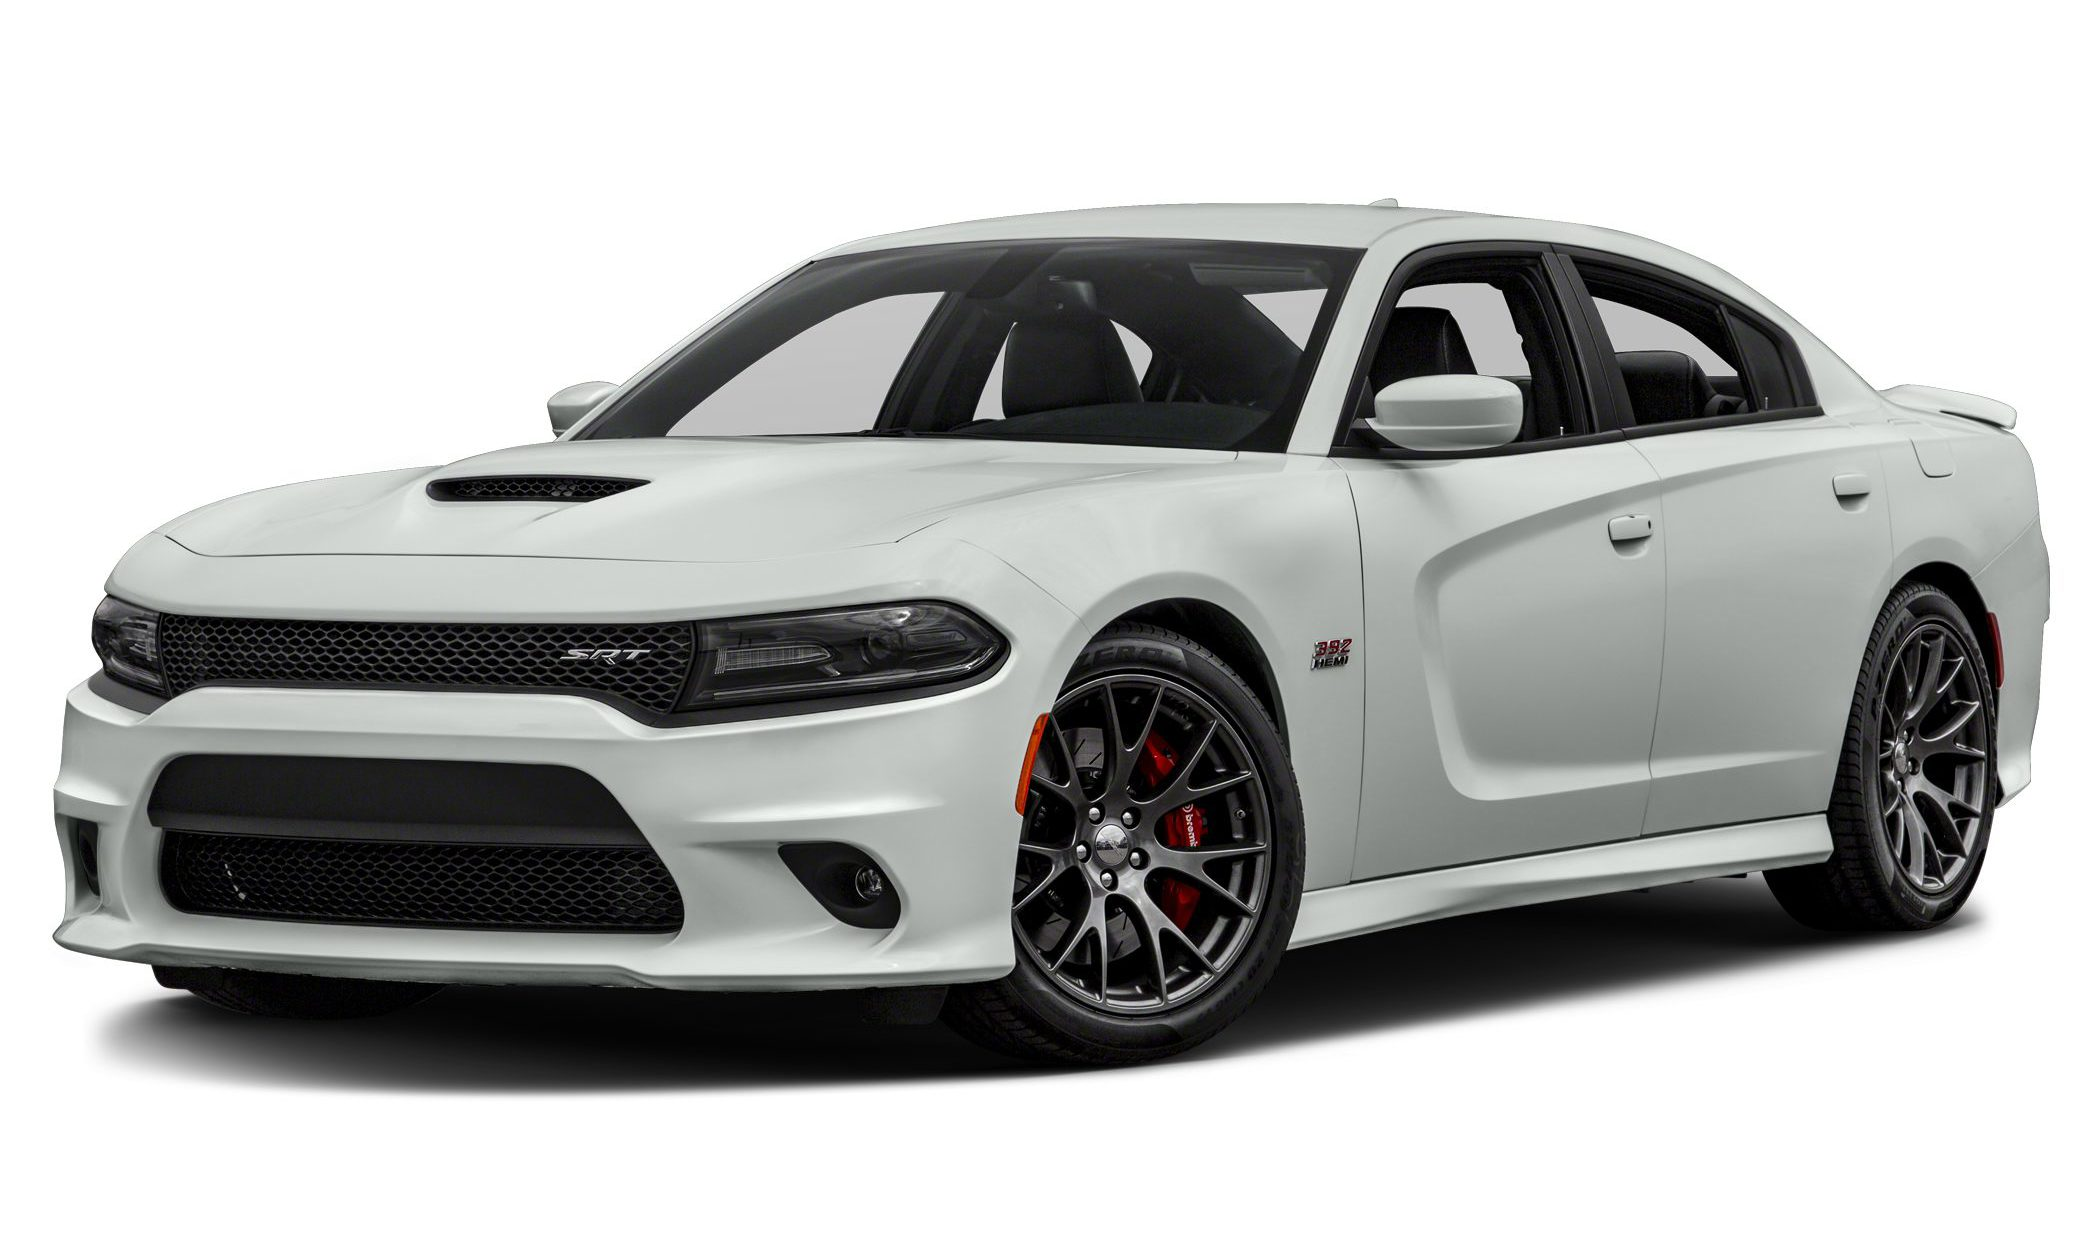 Dodge Charger SRT8 Superbee 6.4L